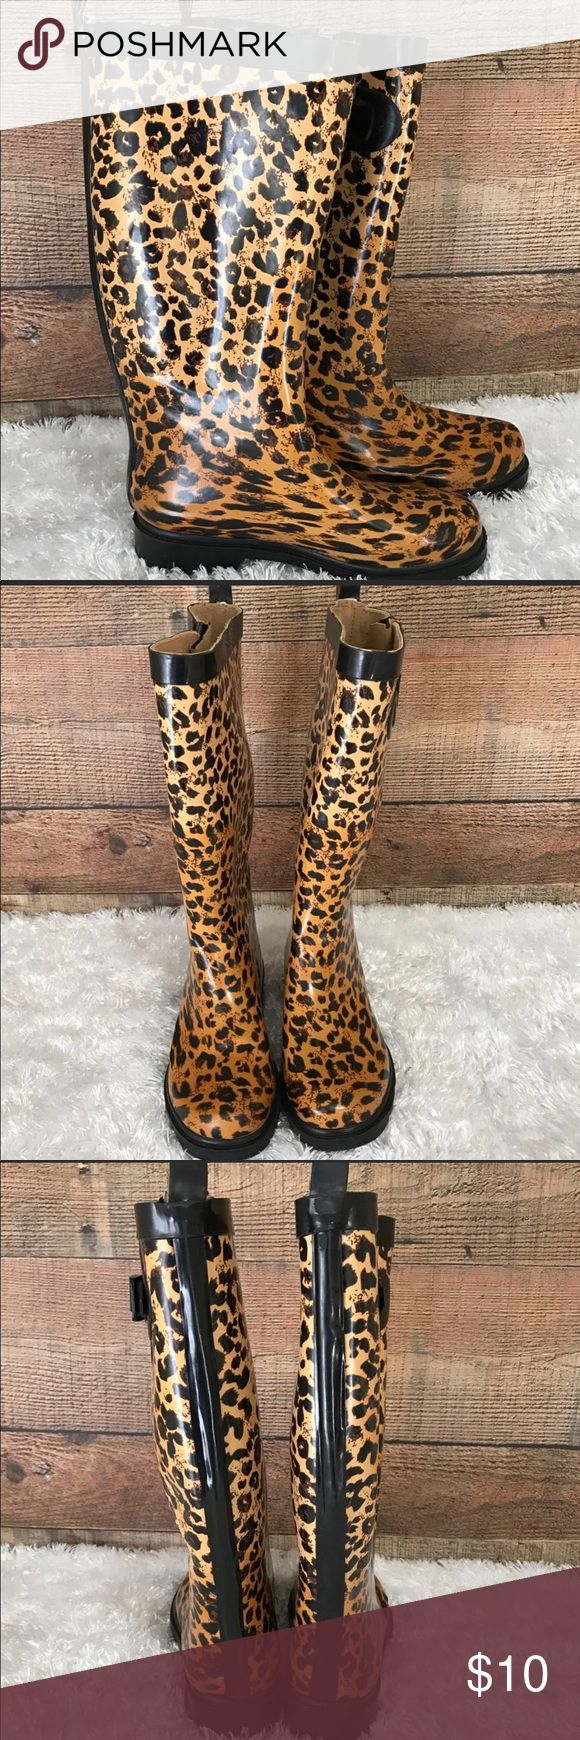 Capellini 6M Leopard Print Rubber Rain Boots Gently used with no flaws Capelli of New York Shoes Winter & Rain Boots